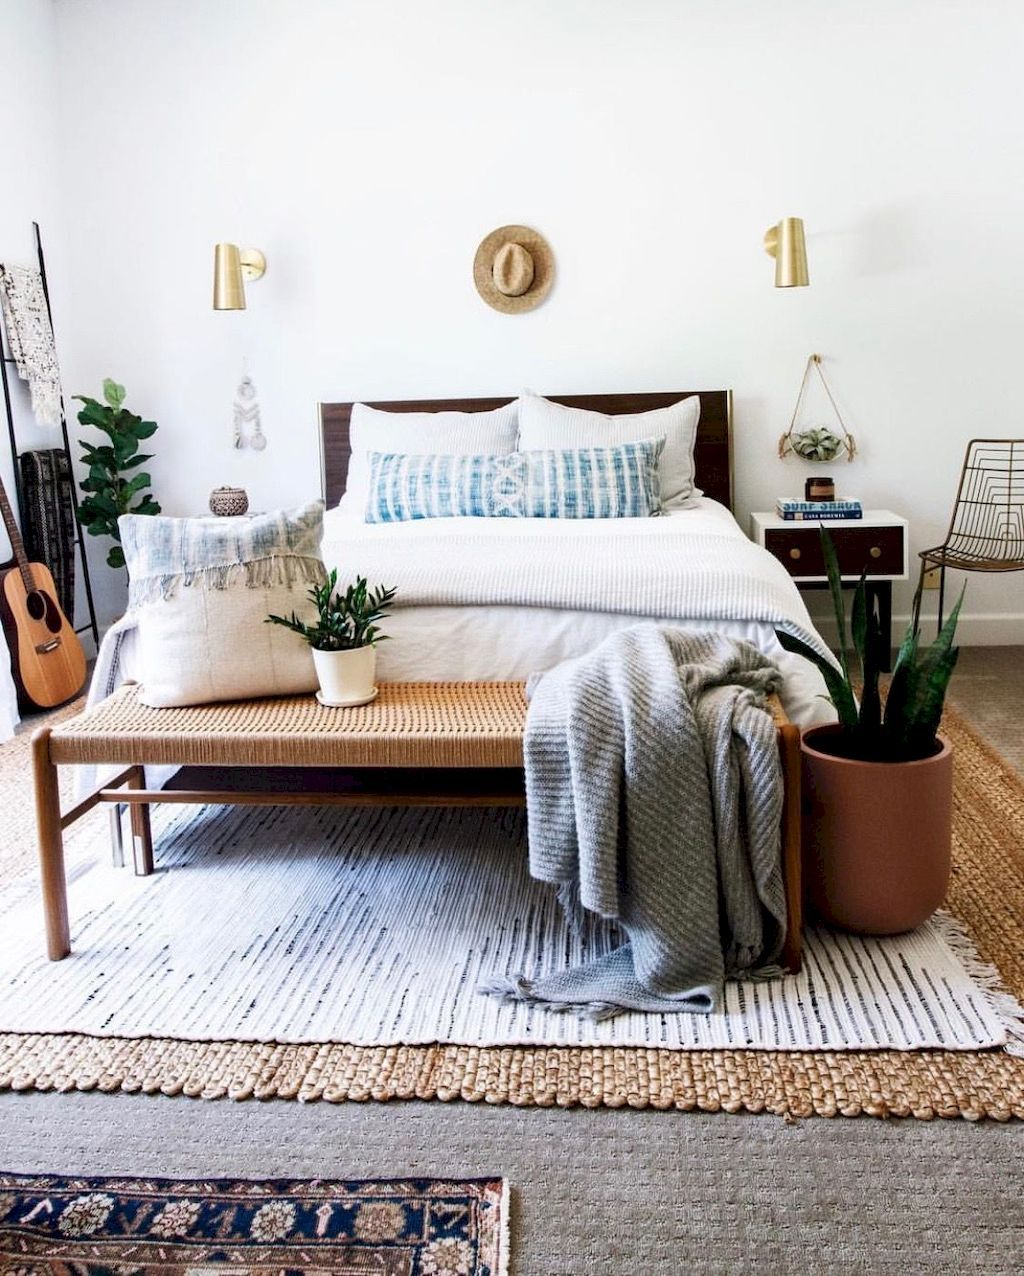 20 Decorating Tricks For Your Bedroom: Easy Tricks To Make Cozy Decorations In Small Bedrooms